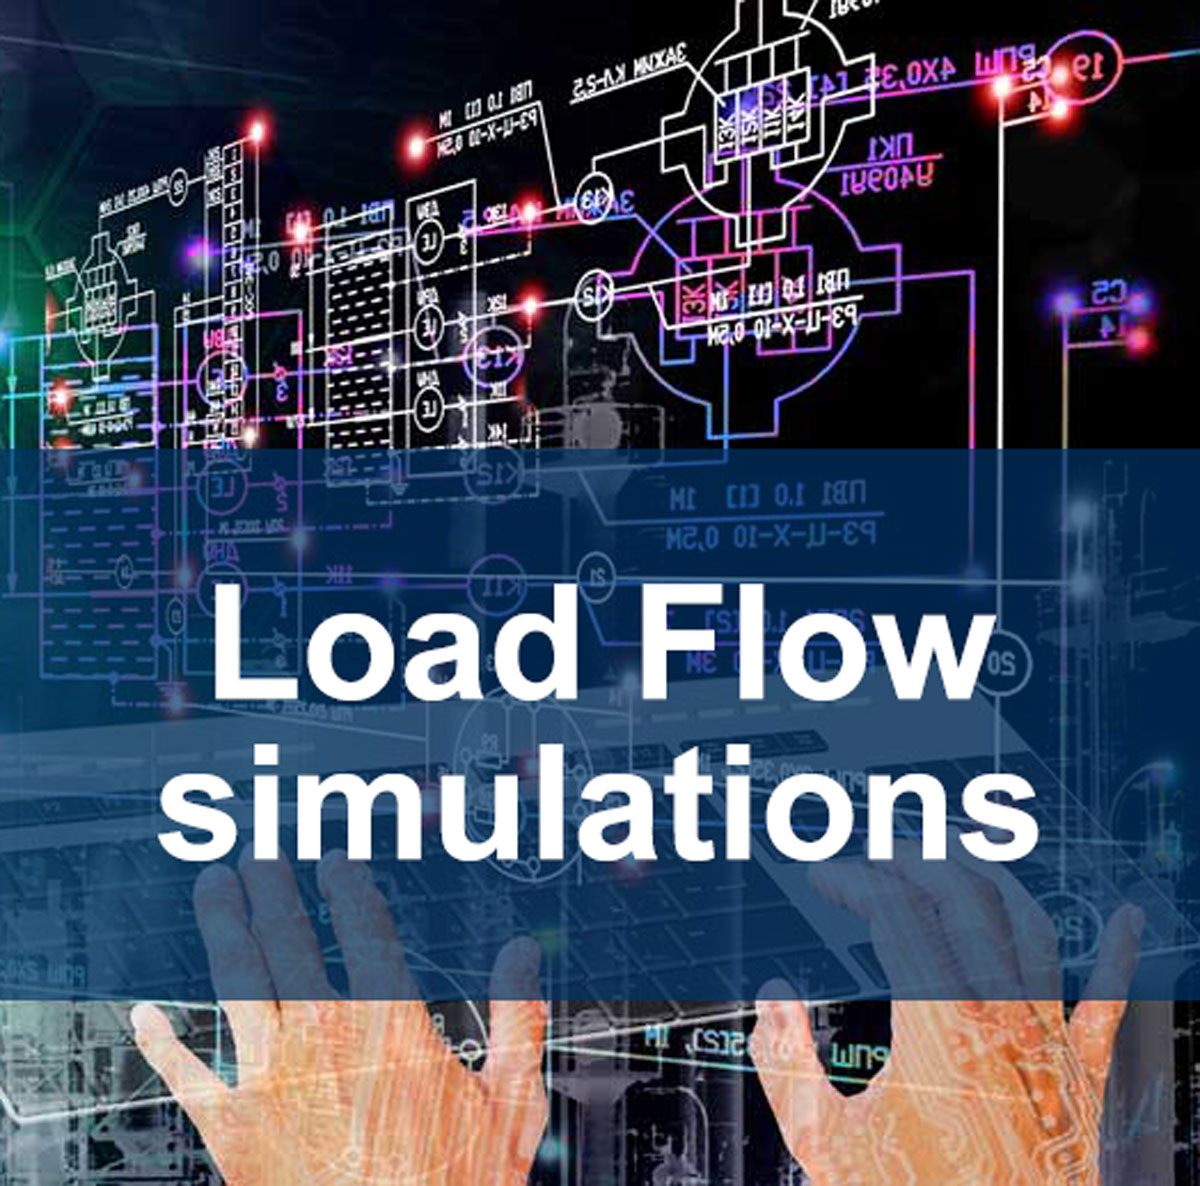 HyTEPS Load Flow simulations